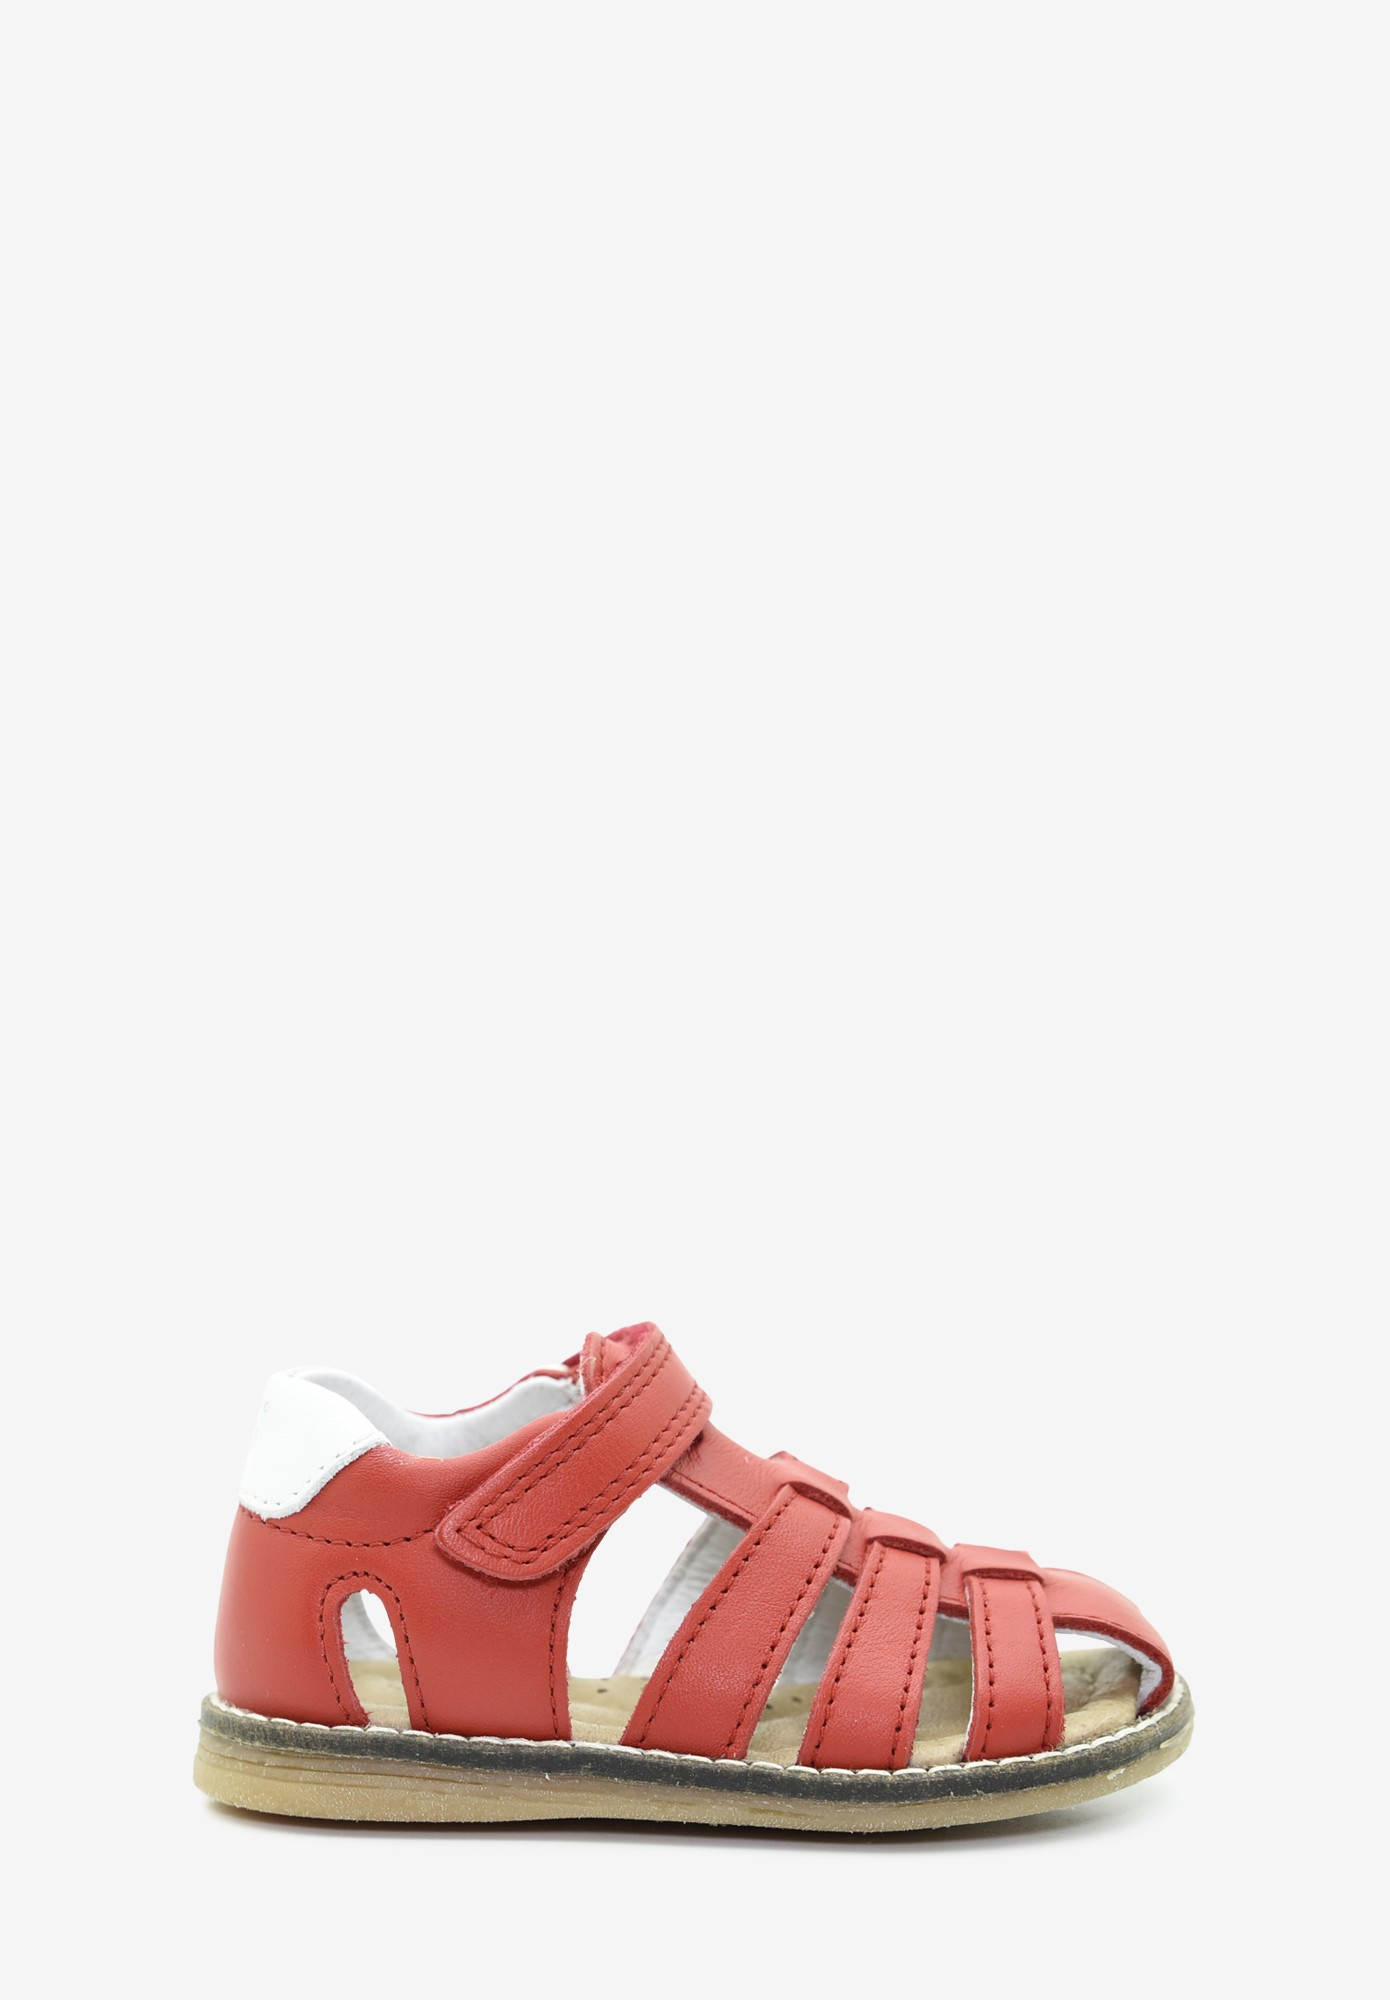 Baby shoes - Sandals - Boy